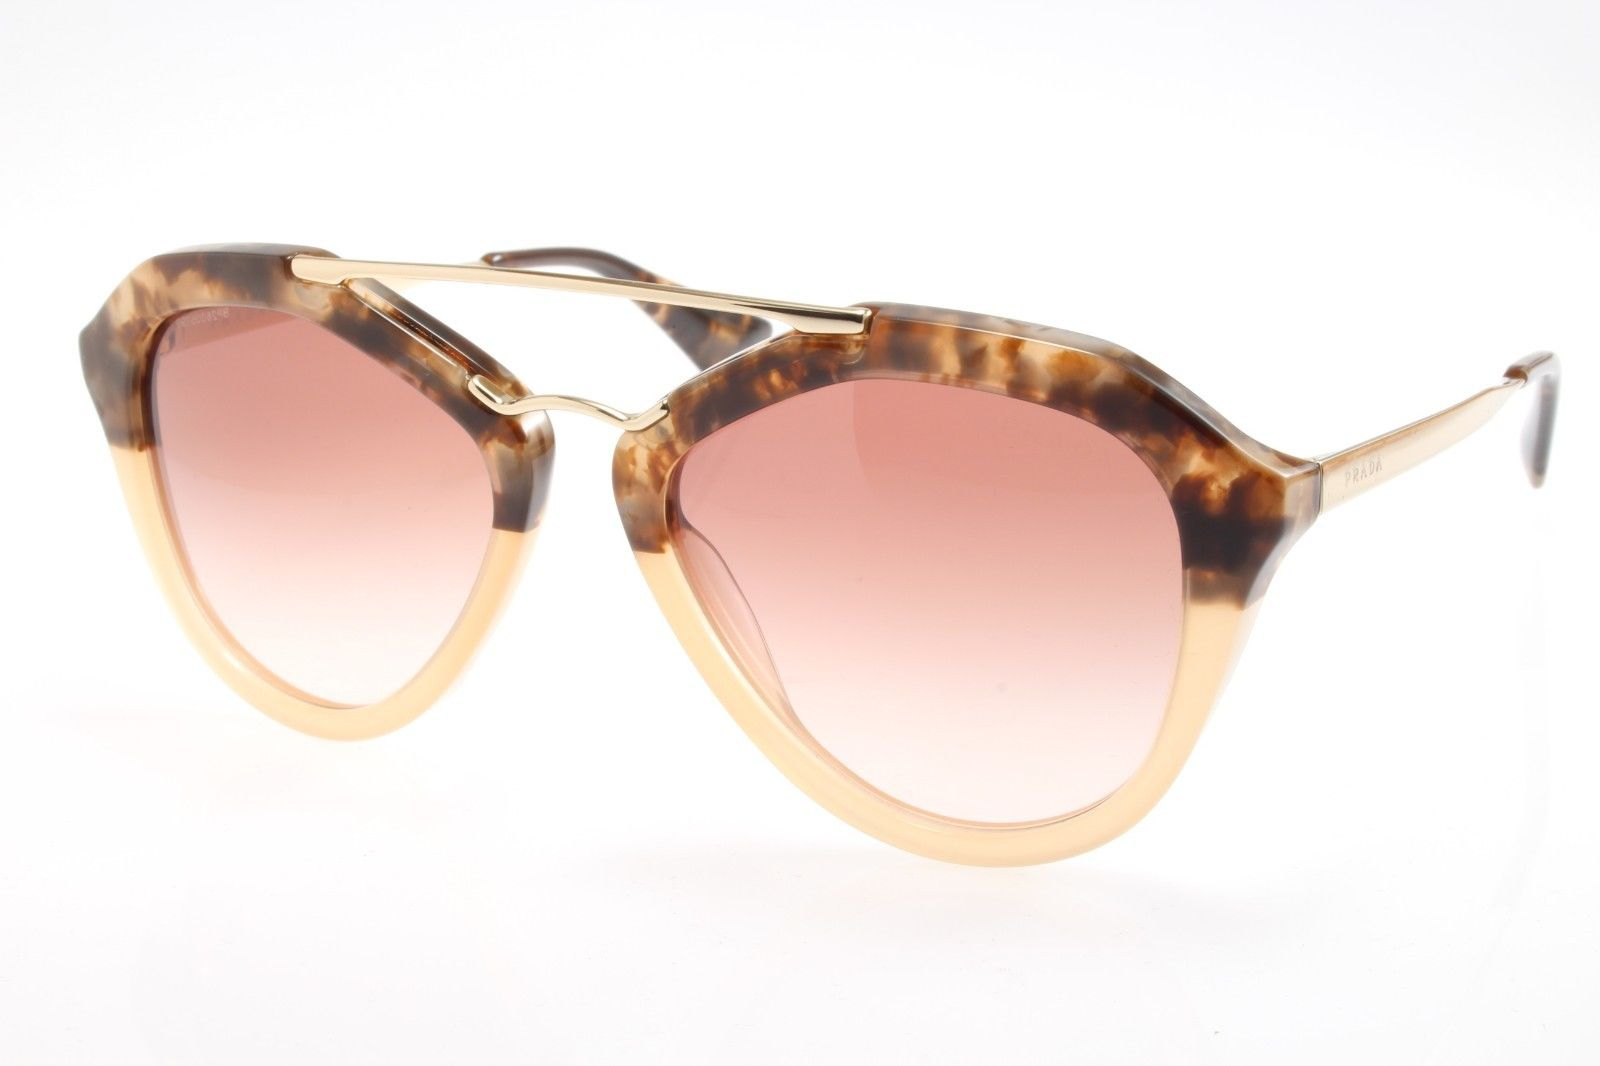 d1ff6a88a30b New original Prada Cinema SPR 12QS ROZ-0A6 54 Women`s Sunglasses Havana  Gradient